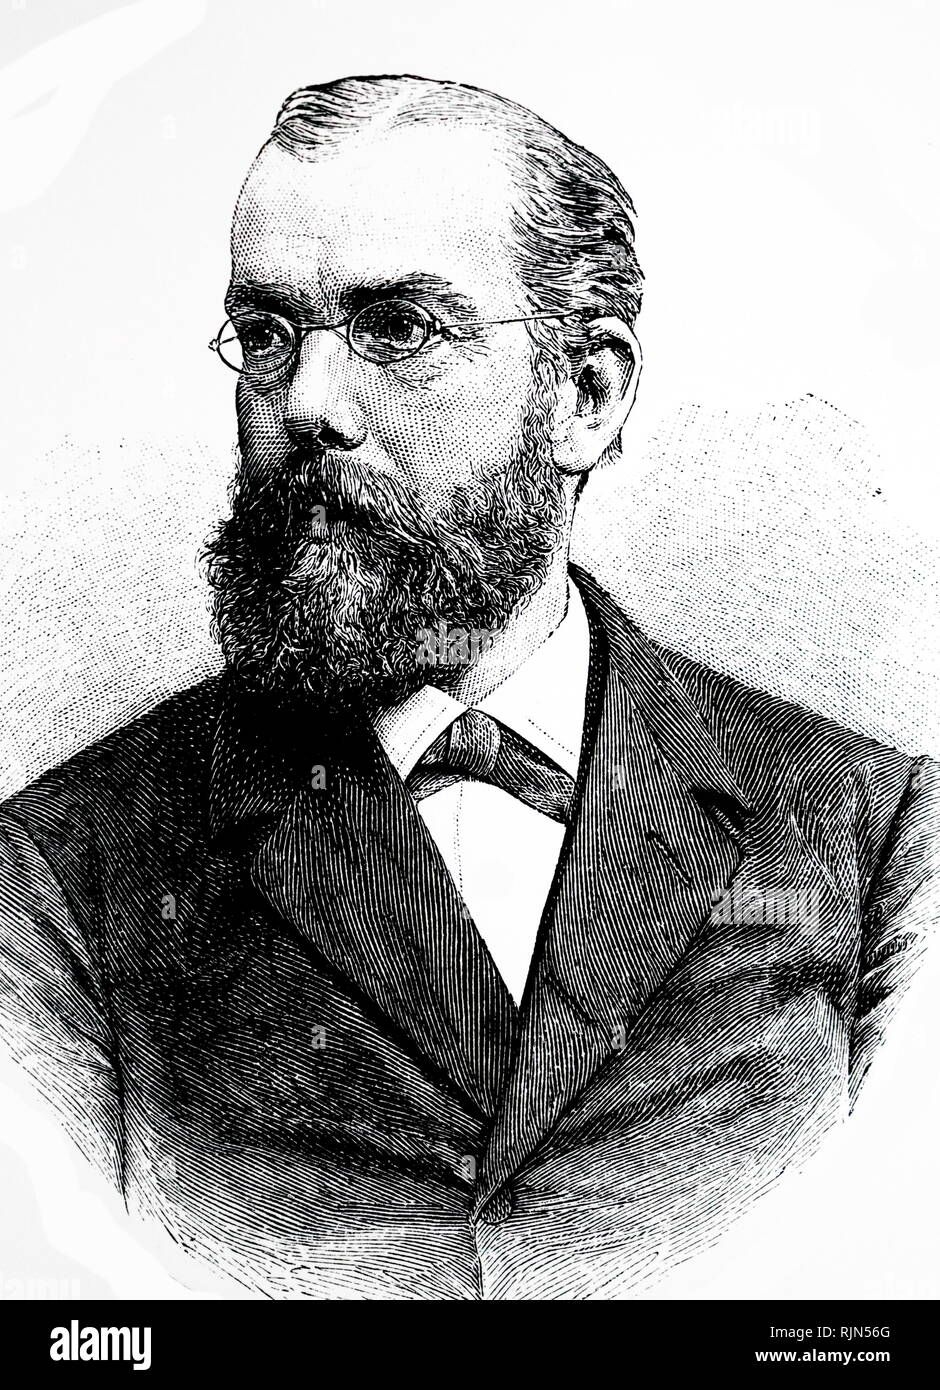 Illustration showing Robert Koch (1843 - 1910); German physician and microbiologist. As the founder of modern bacteriology, he identified the specific causative agents of tuberculosis, cholera, and anthrax and gave experimental support for the concept of infectious disease - Stock Image